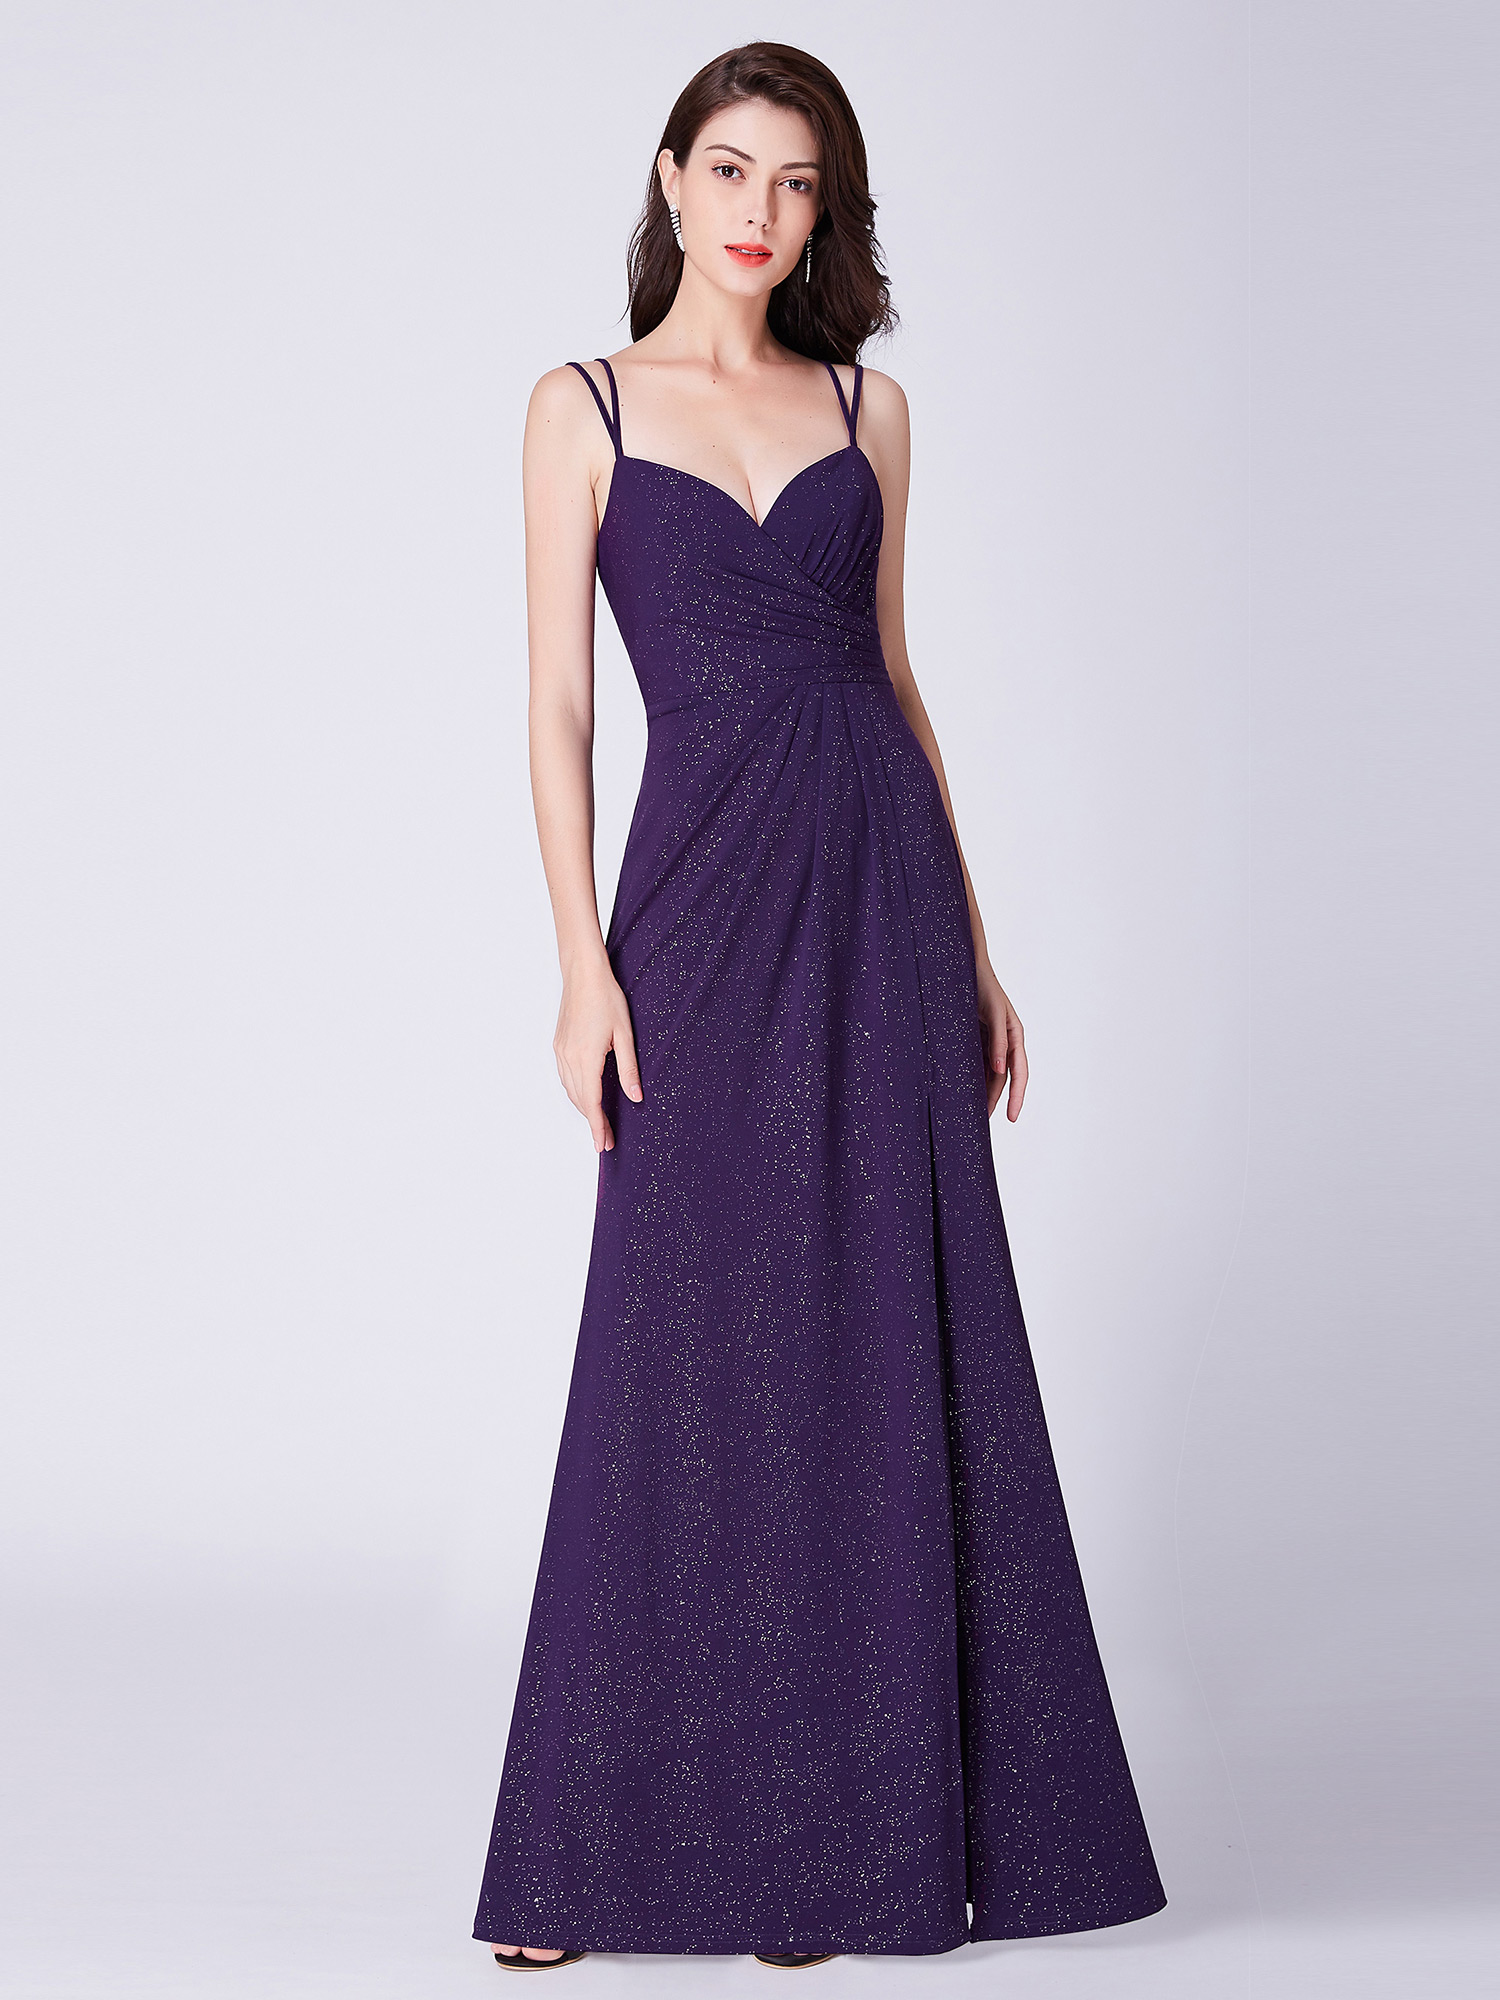 Ever-Pretty-US-Split-Homecoming-Formal-Evening-Party-Dresses-Cocktail-Prom-Gown thumbnail 12